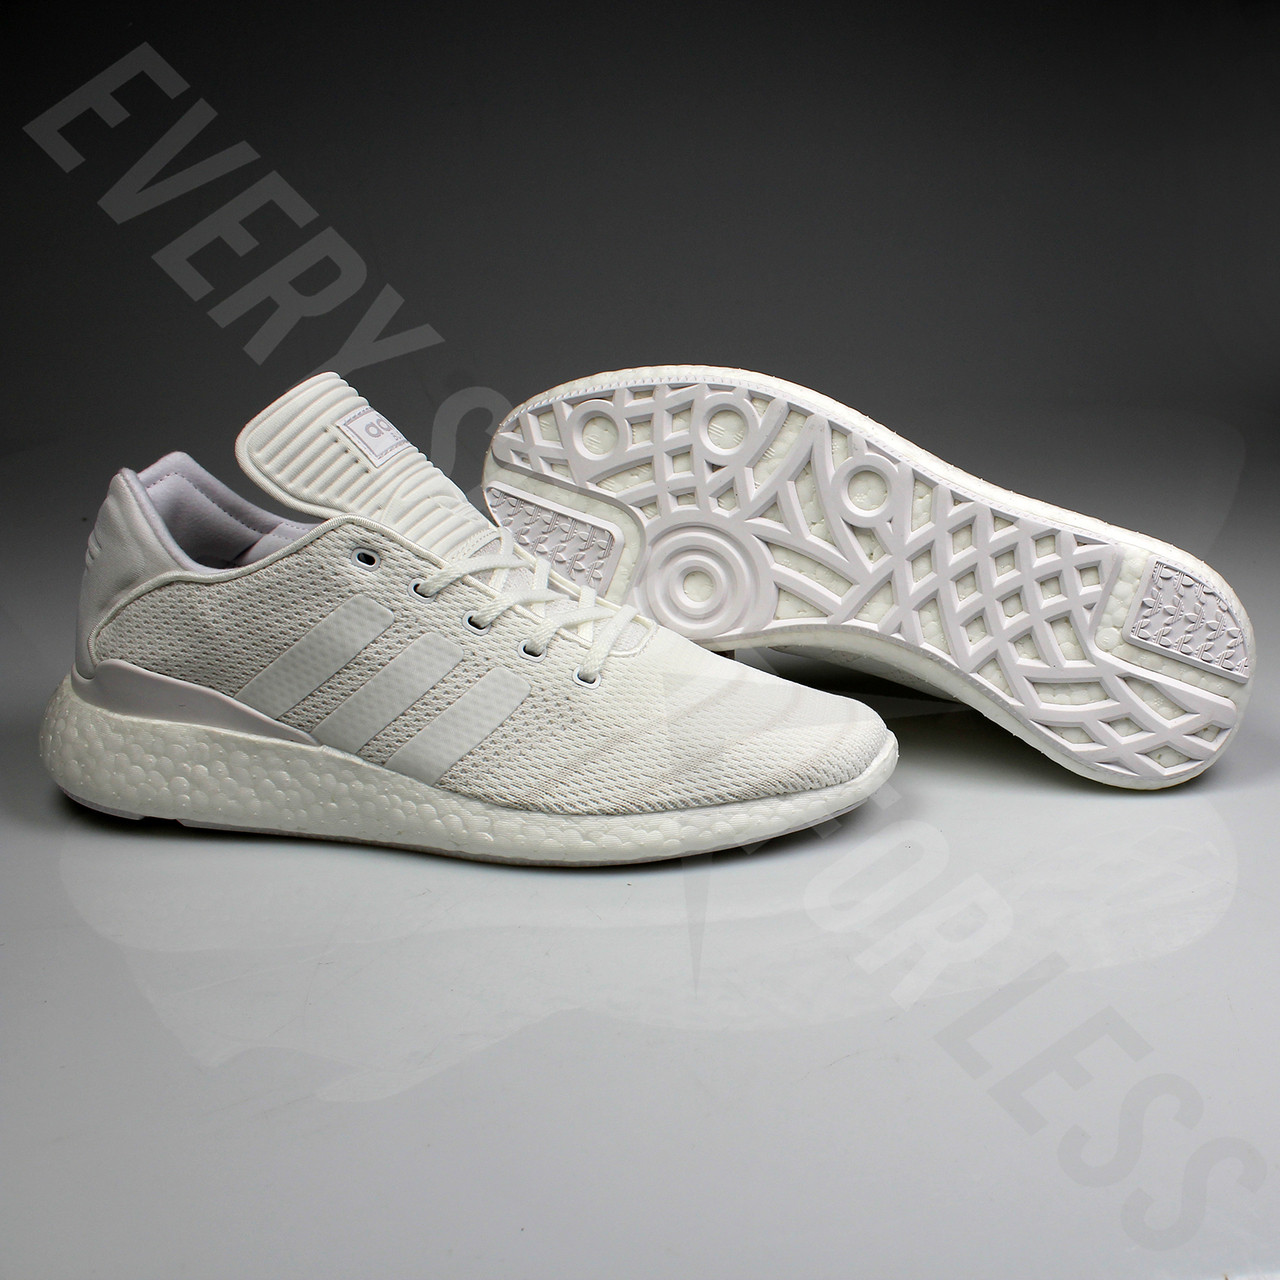 98a20f6d6cb47 ... Adidas Busenitz Pure Boost PK Men s Skateboard Shoes BB8376 - ...